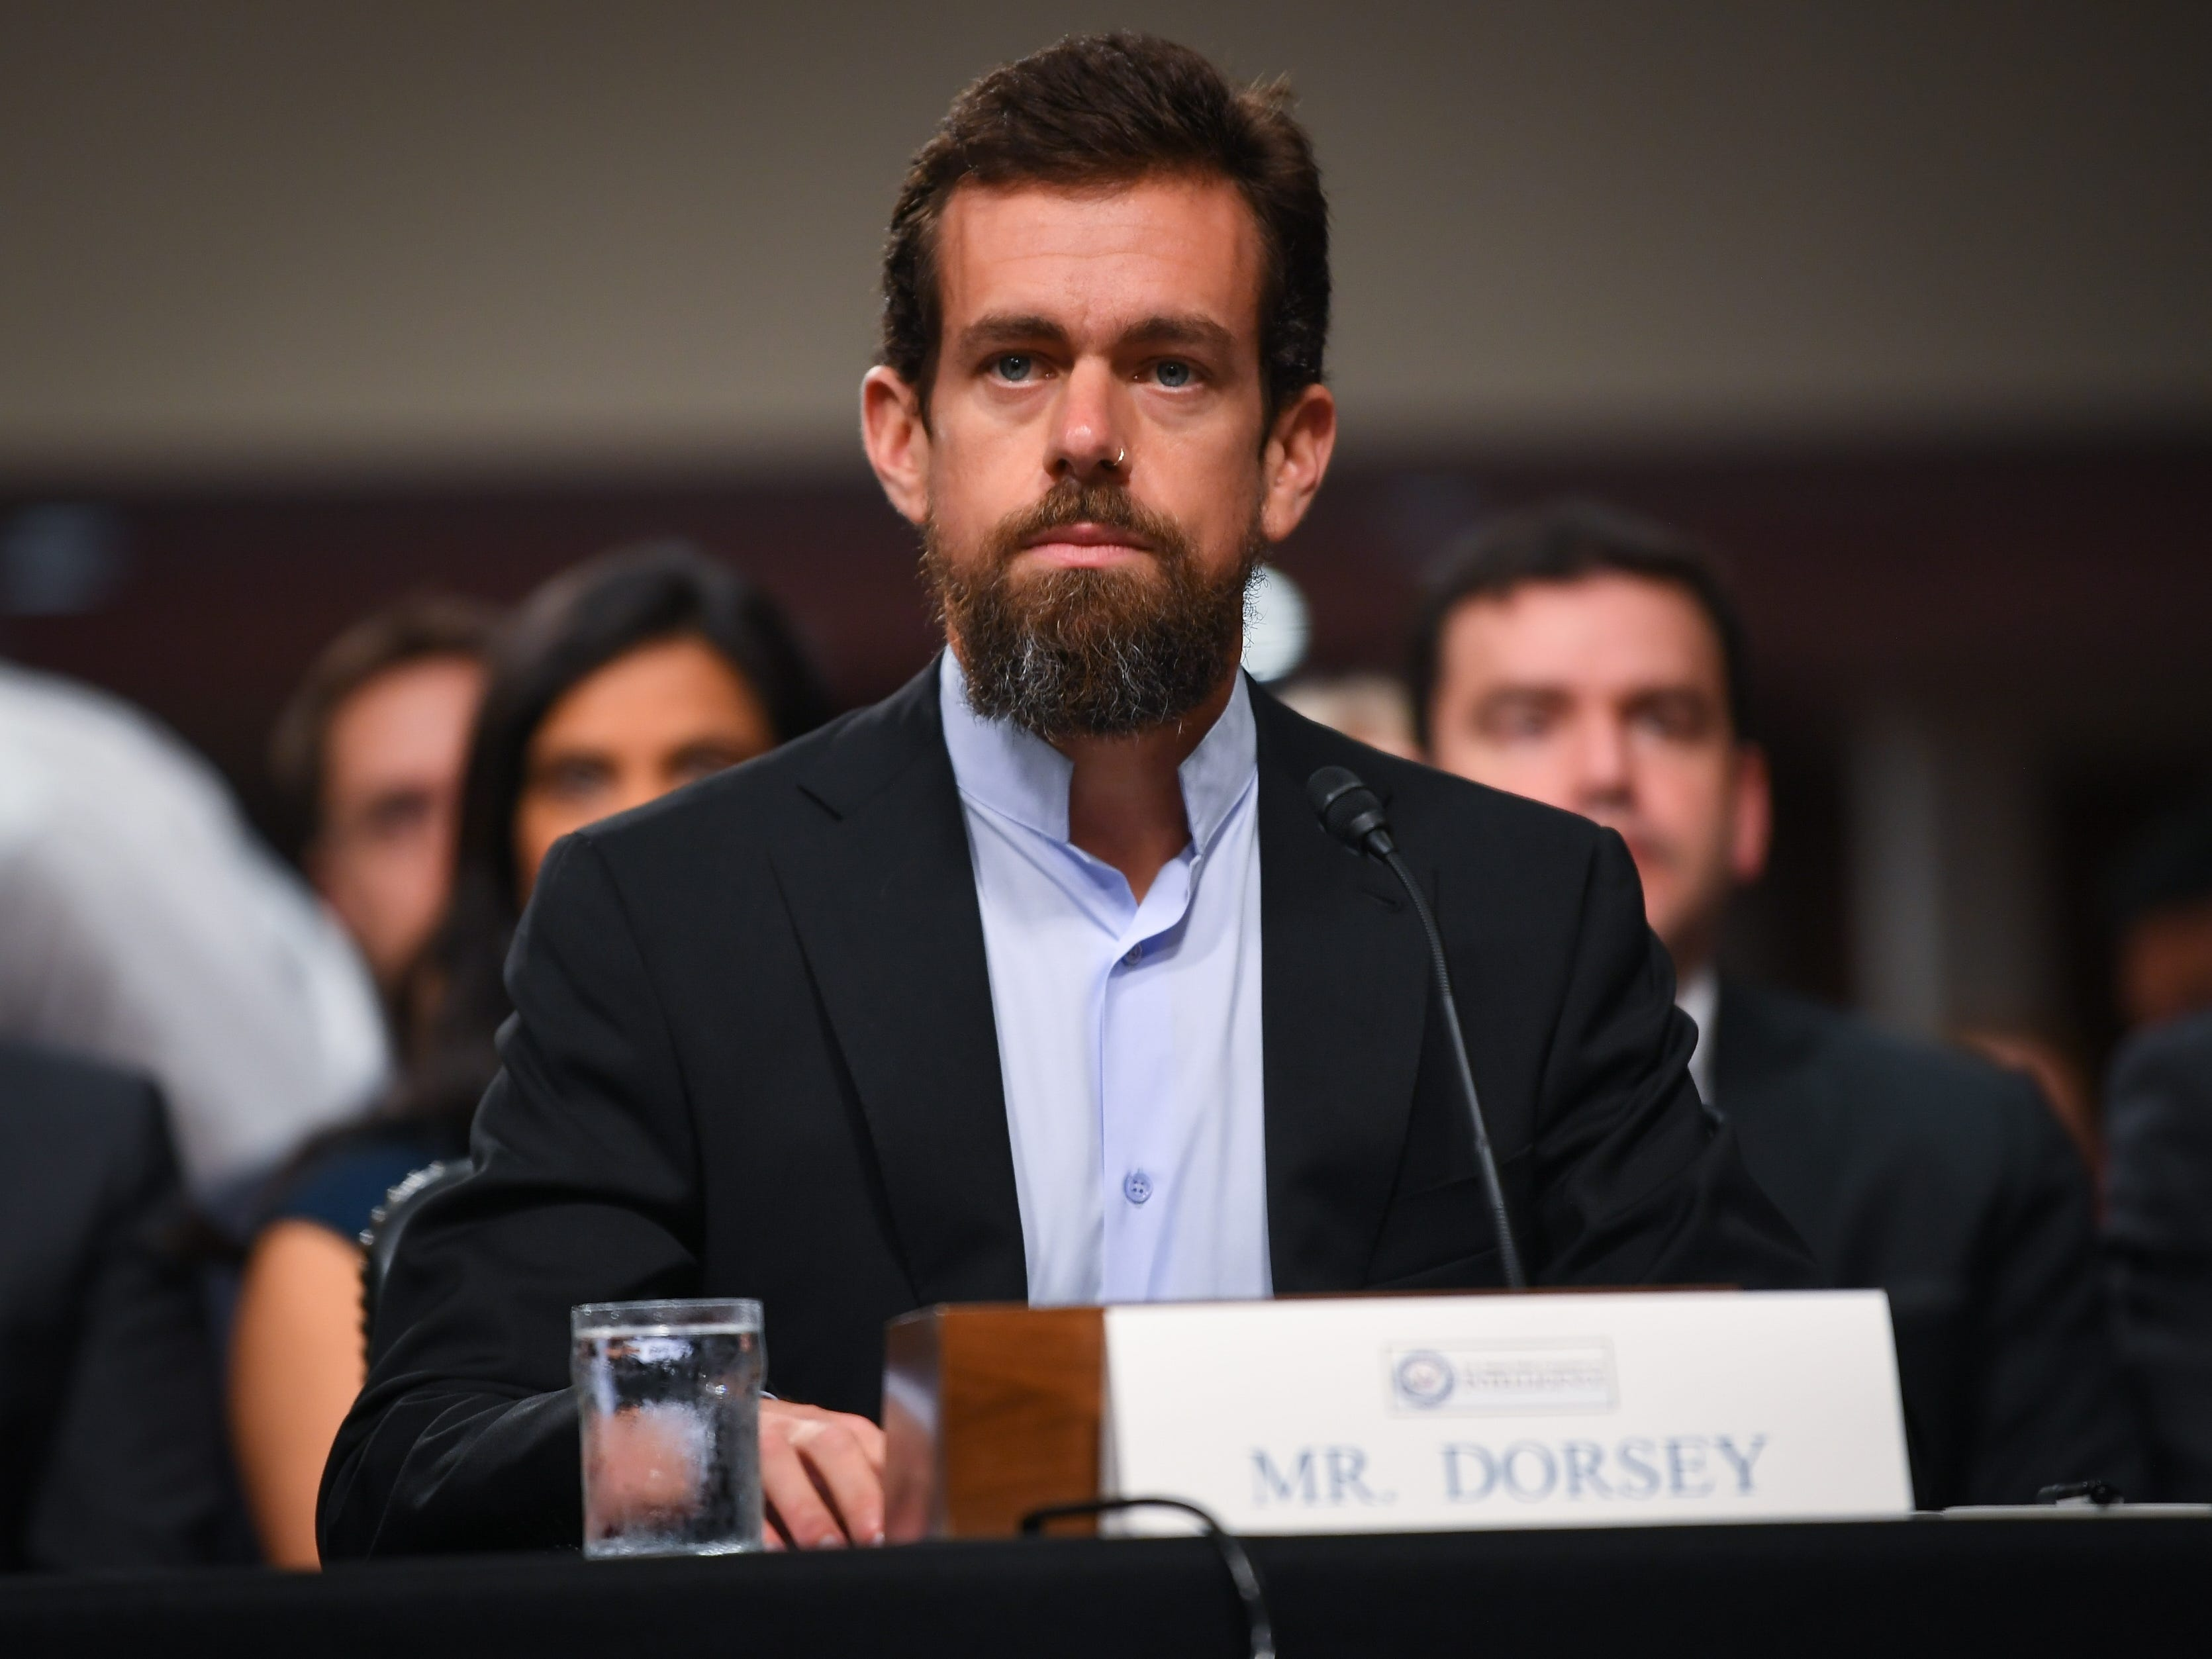 9/5/18 9:34:17 AM -- Washington, DC, U.S.A  -- Jack Dorsey, chief executive officer of Twitter Inc., testifies before the Senate Select Committee on Intelligence during a hearing on Foreign Influence Operations' Use of Social Media Platforms on Sept. 5, 2018 in Washington.  --    Photo by Jack Gruber, USA TODAY Staff ORG XMIT:  JG 137441 Social Media Hea 9/5/ (Via OlyDrop)